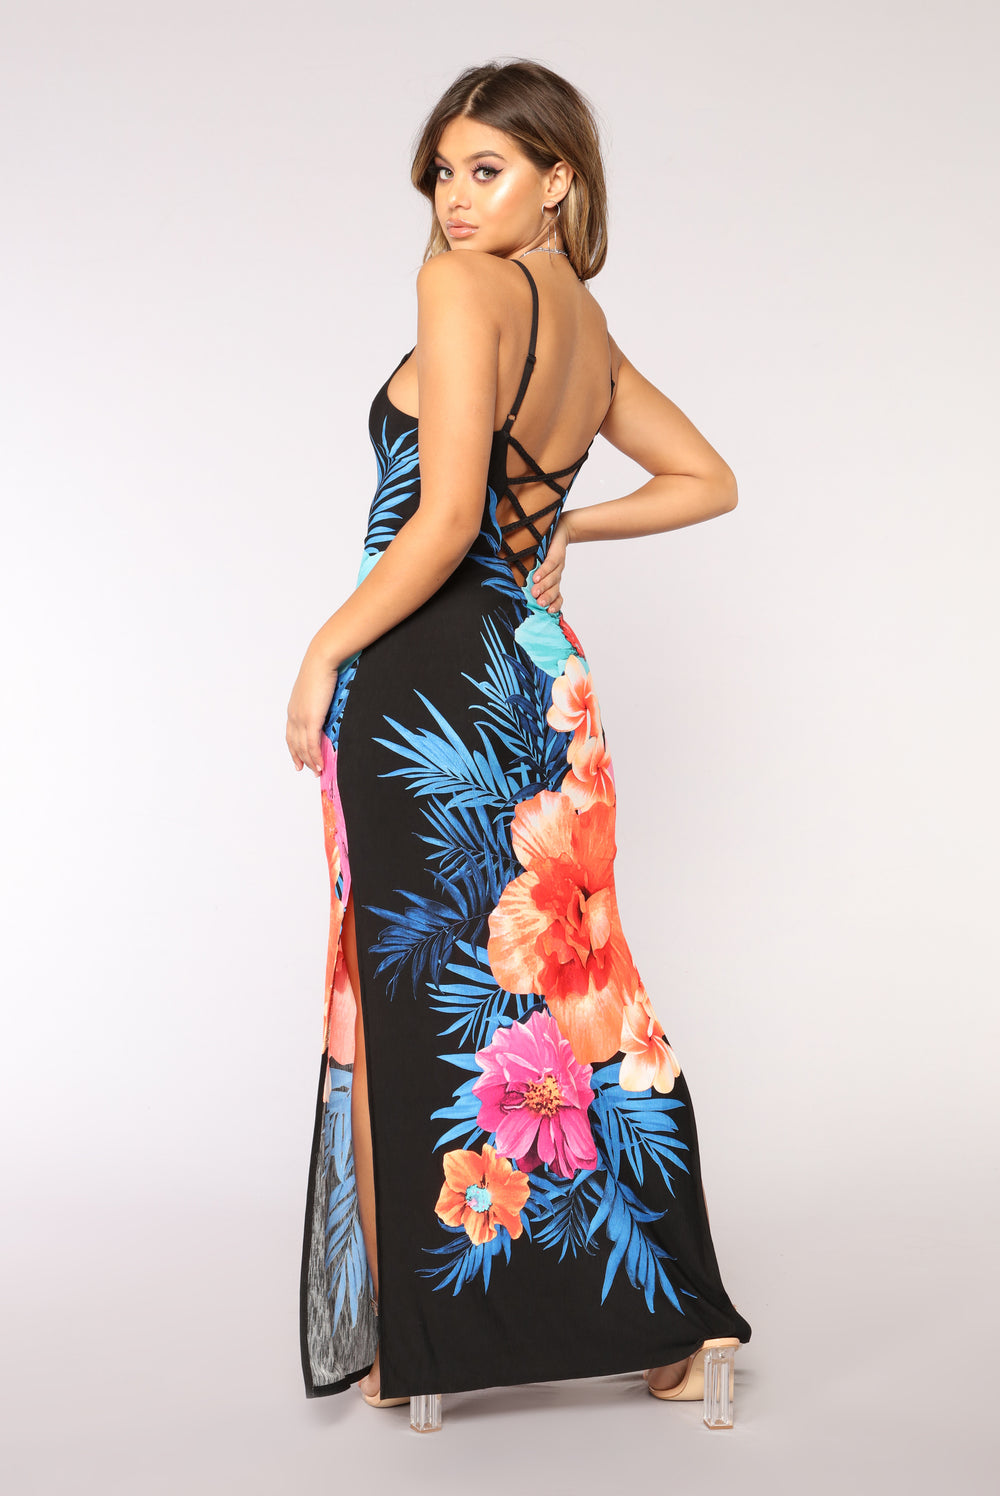 Maldives Maxi Dress - Black